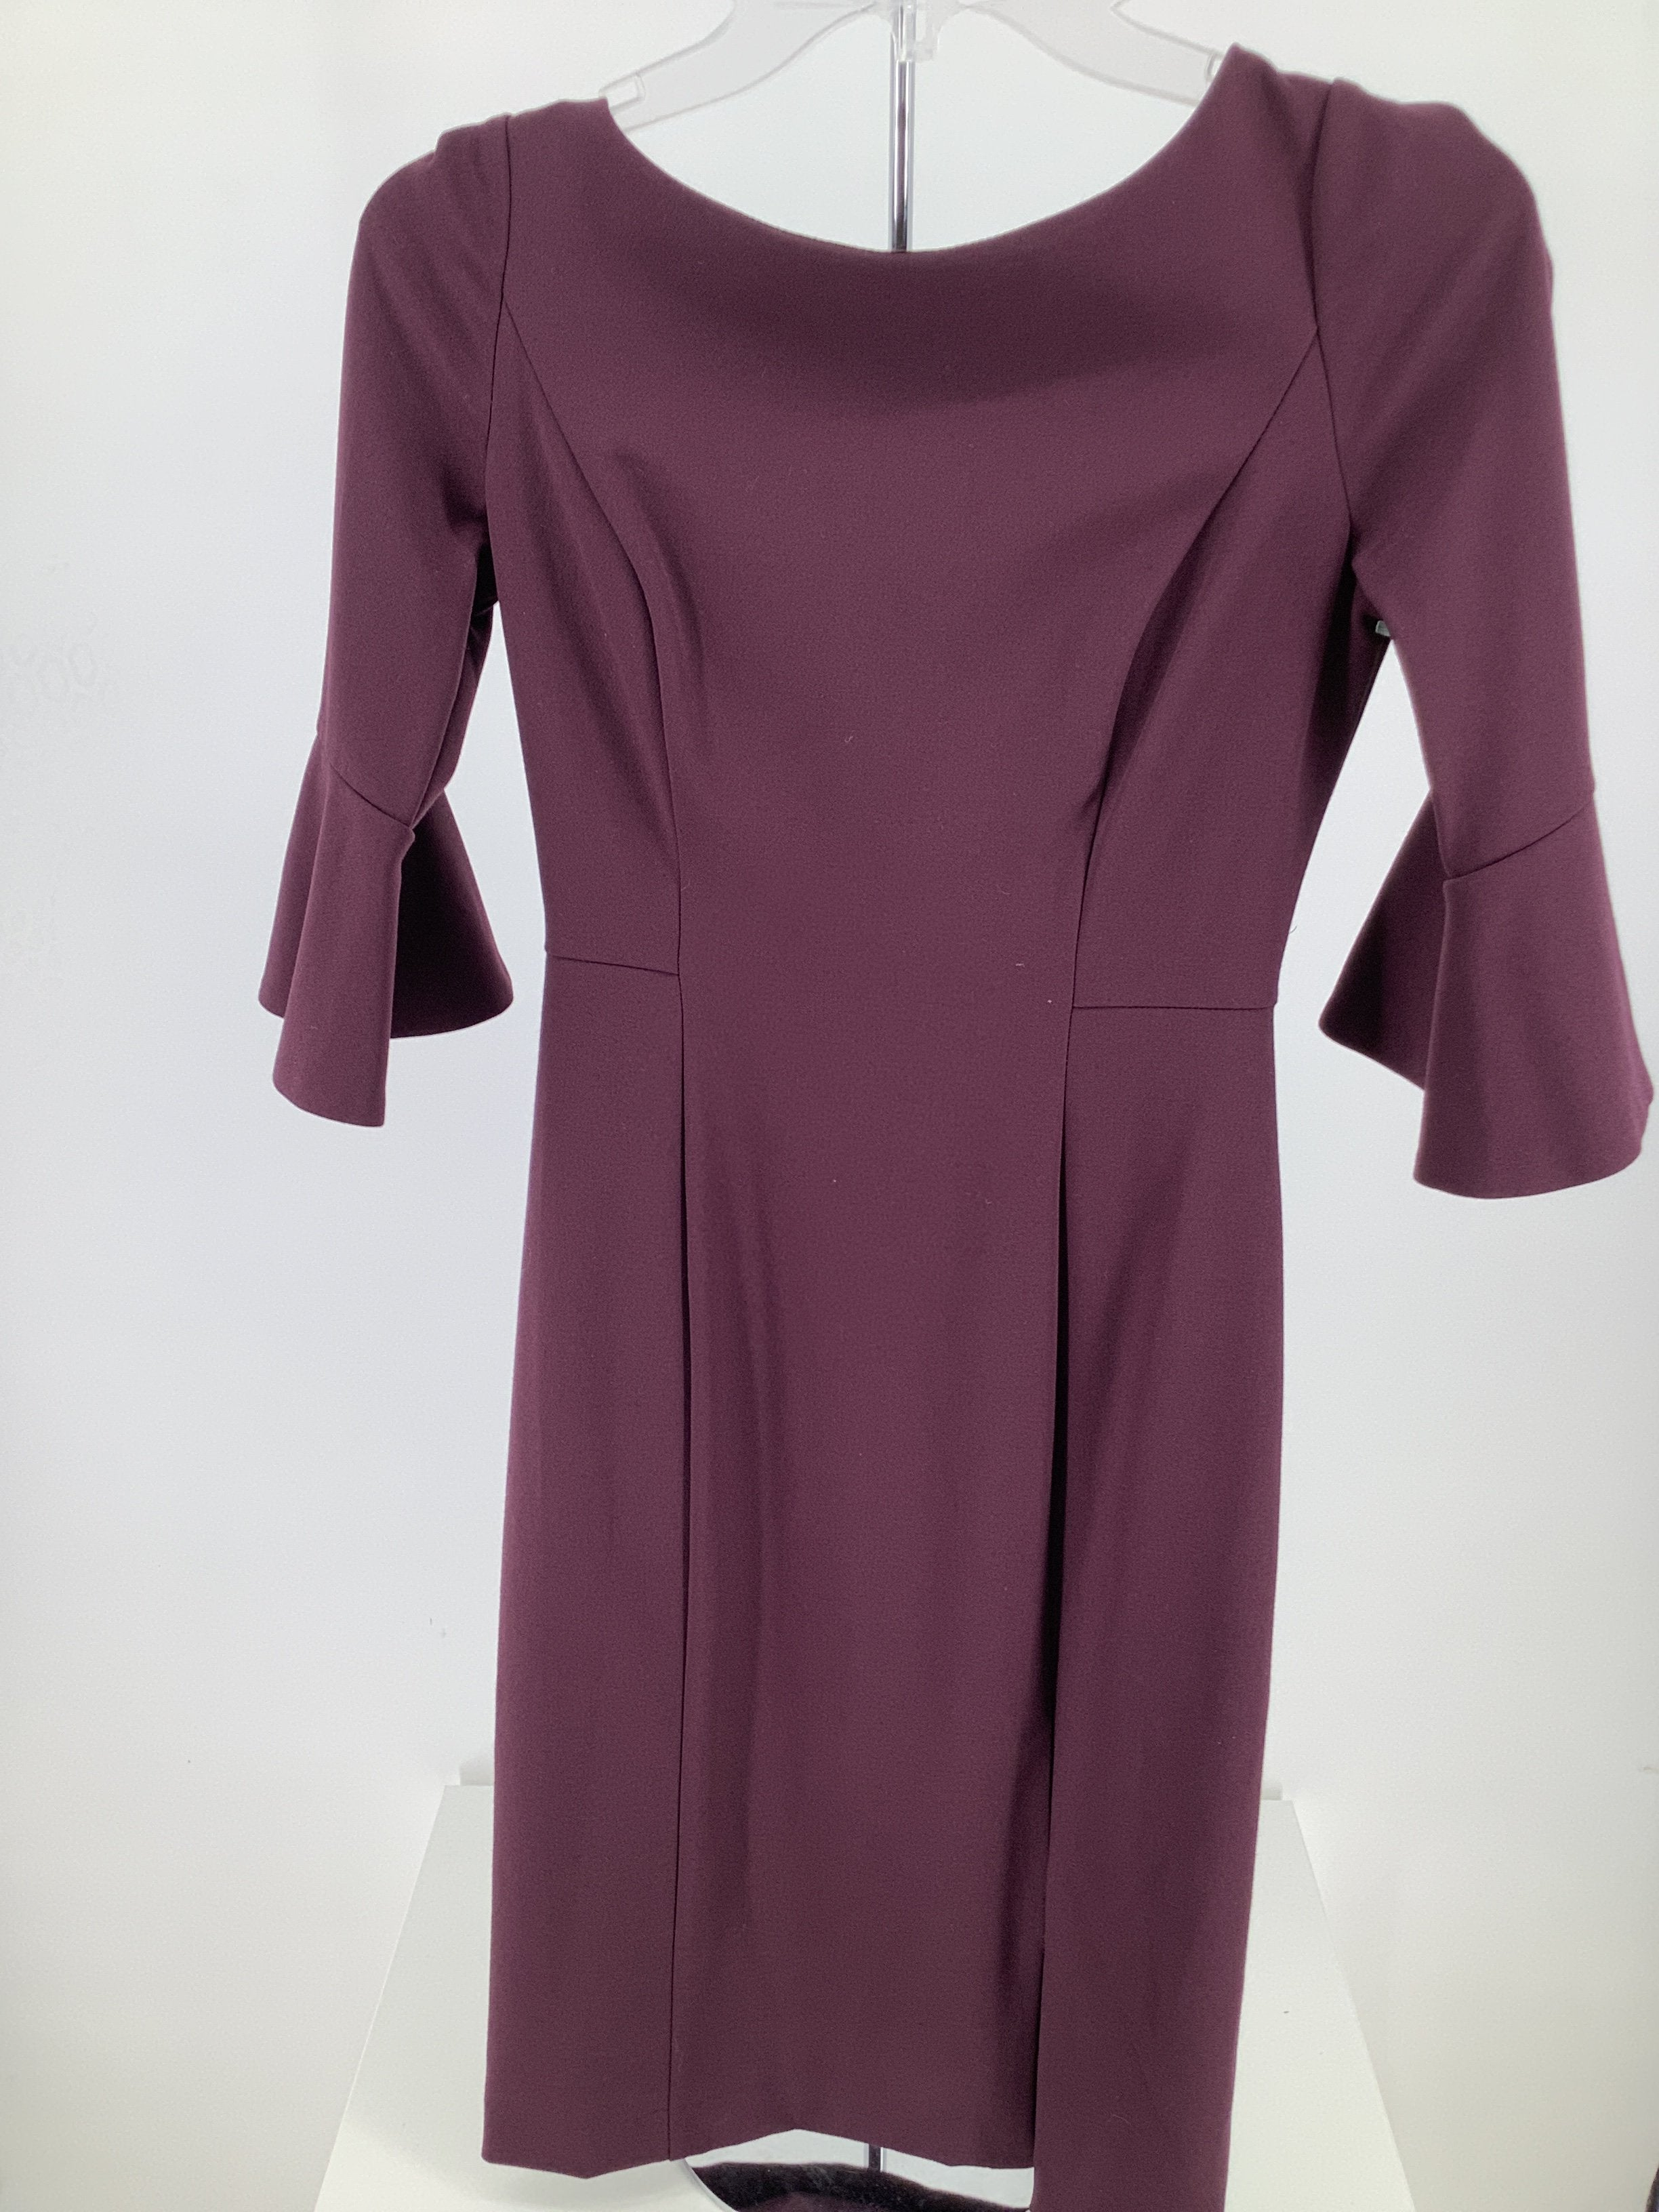 Primary Photo - brand: white house black market , style: dress short long sleeve , color: burgundy , size: 0 , sku: 105-3221-14959